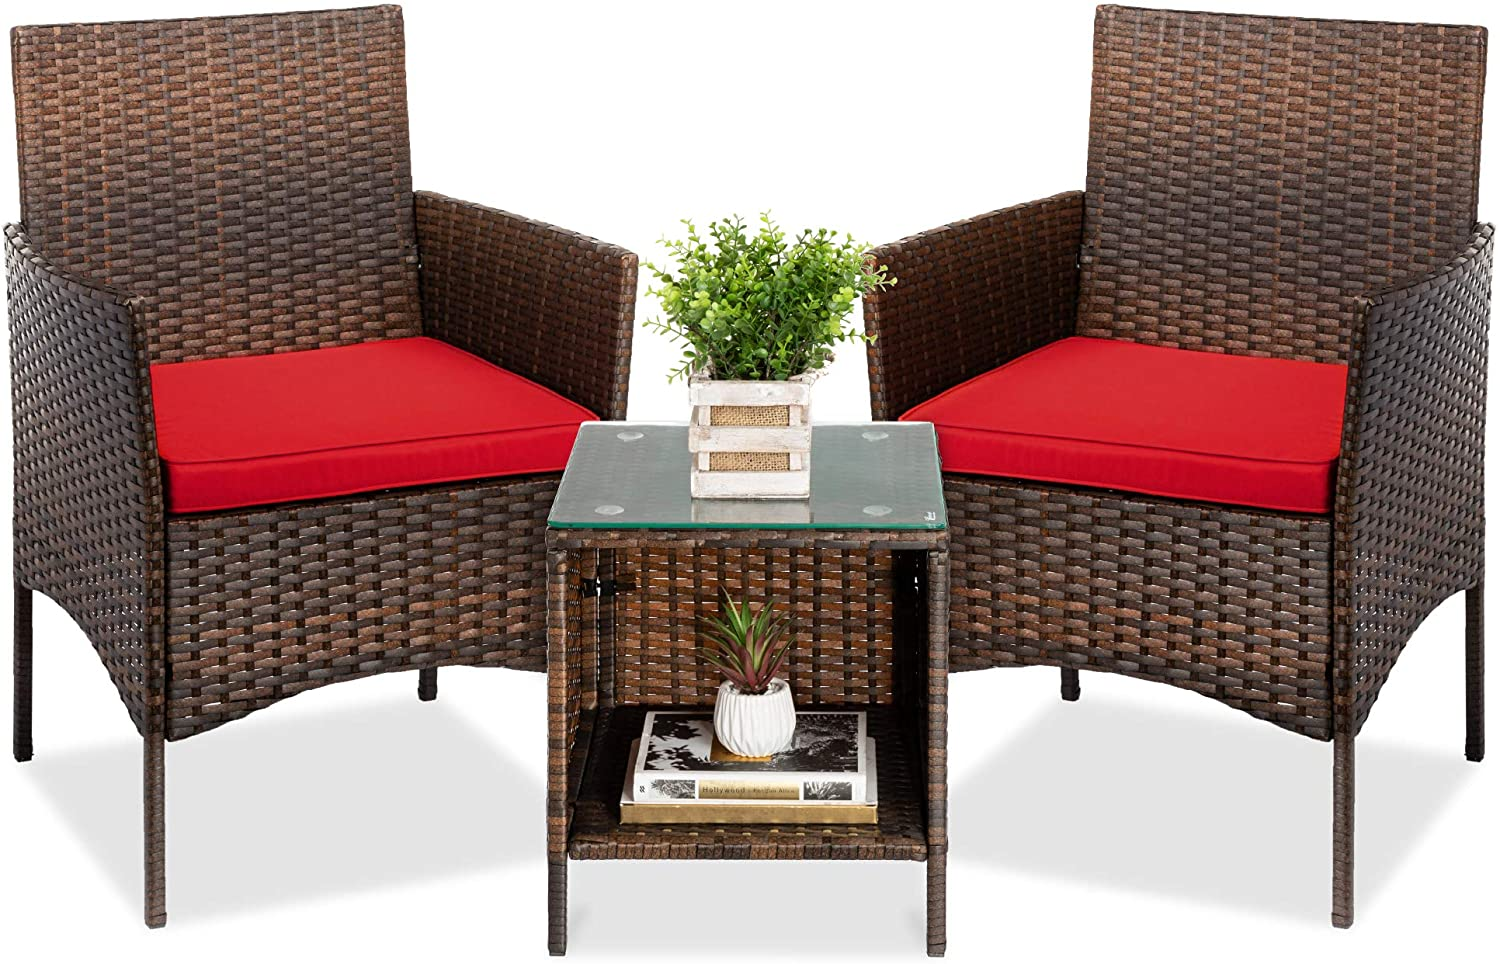 Best Choice Products 3-Piece Outdoor Wicker Conversation Bistro Set, Patio Furniture for Yard, Garden w/ 2 Chairs, 2 Cushions, Side Storage Table - Brown/Red